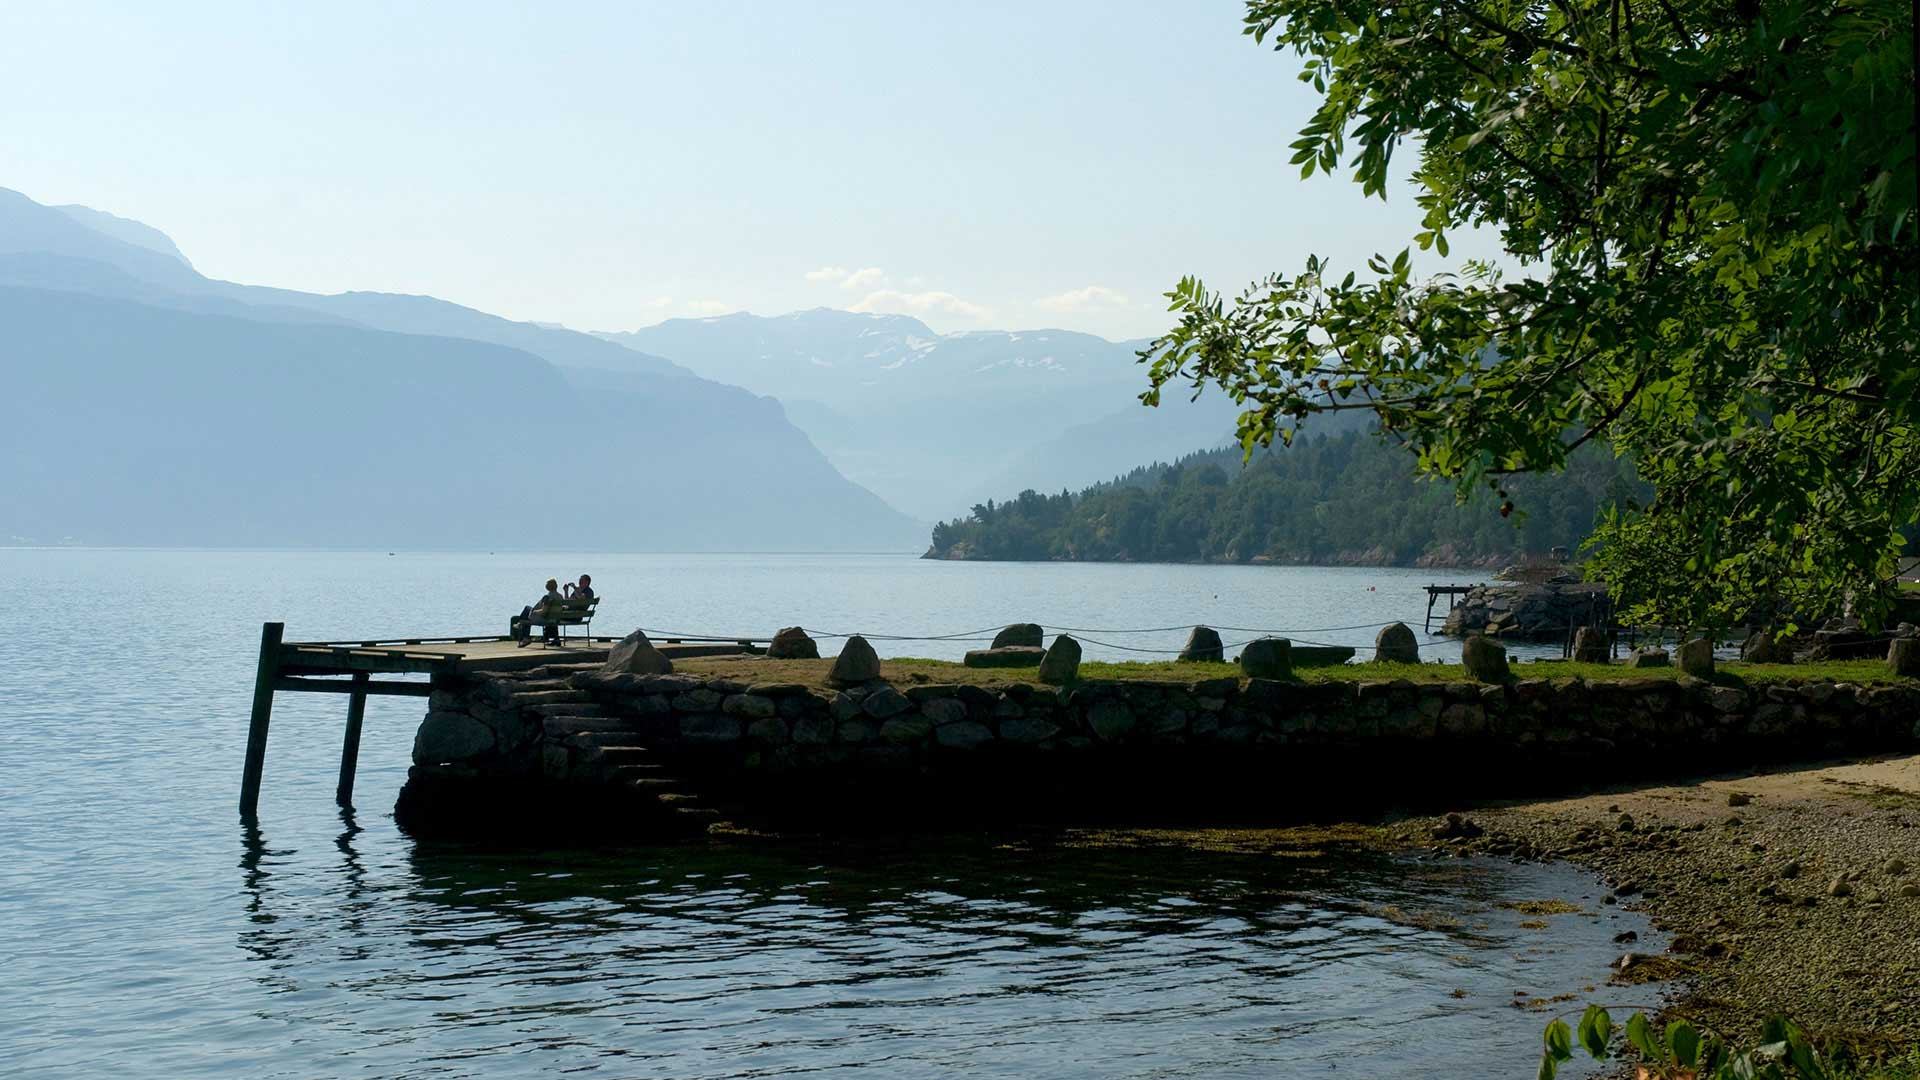 Car ferries sognefjord norway - Norway In A Nutshell The Classic Tour 6 Days 5 Nights Nordic Visitor